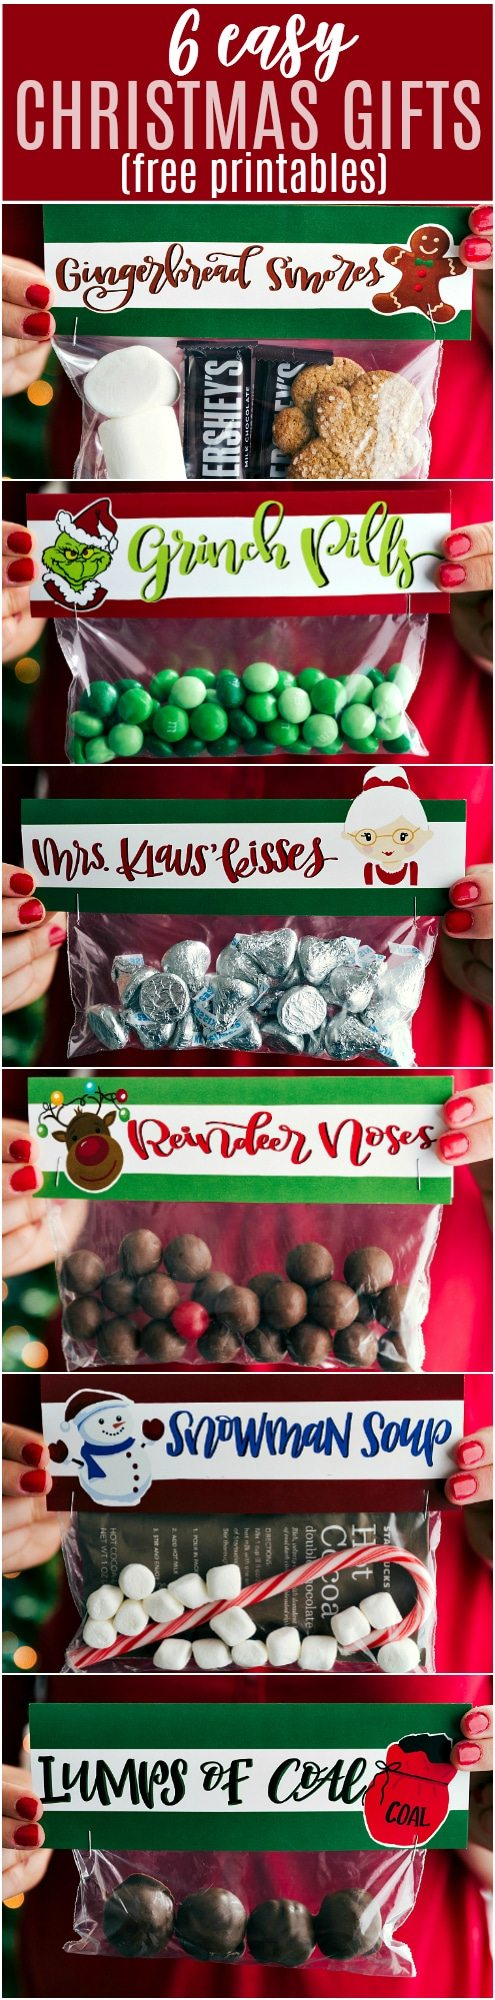 6 easy christmas gifts